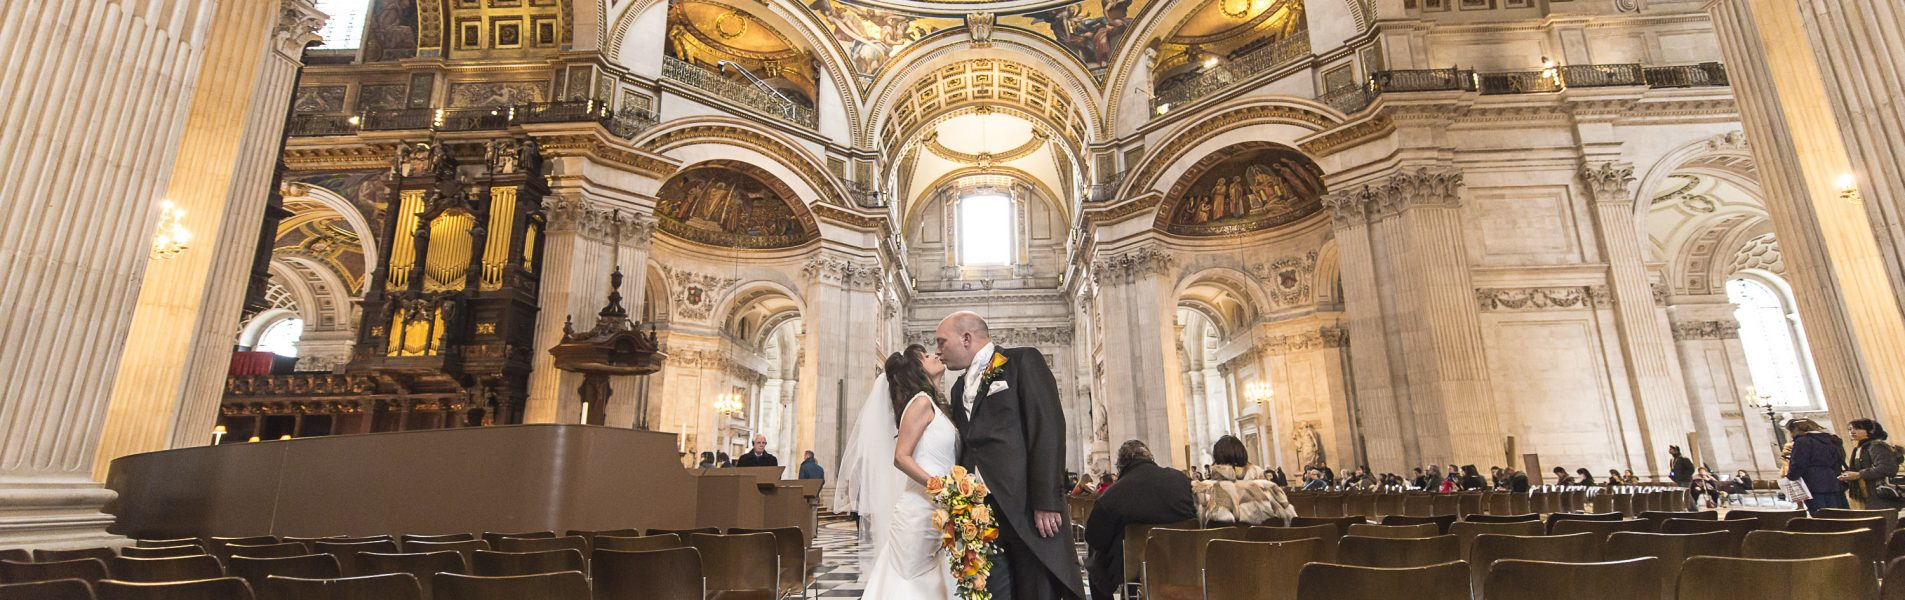 St Paul's Cathedral wedding